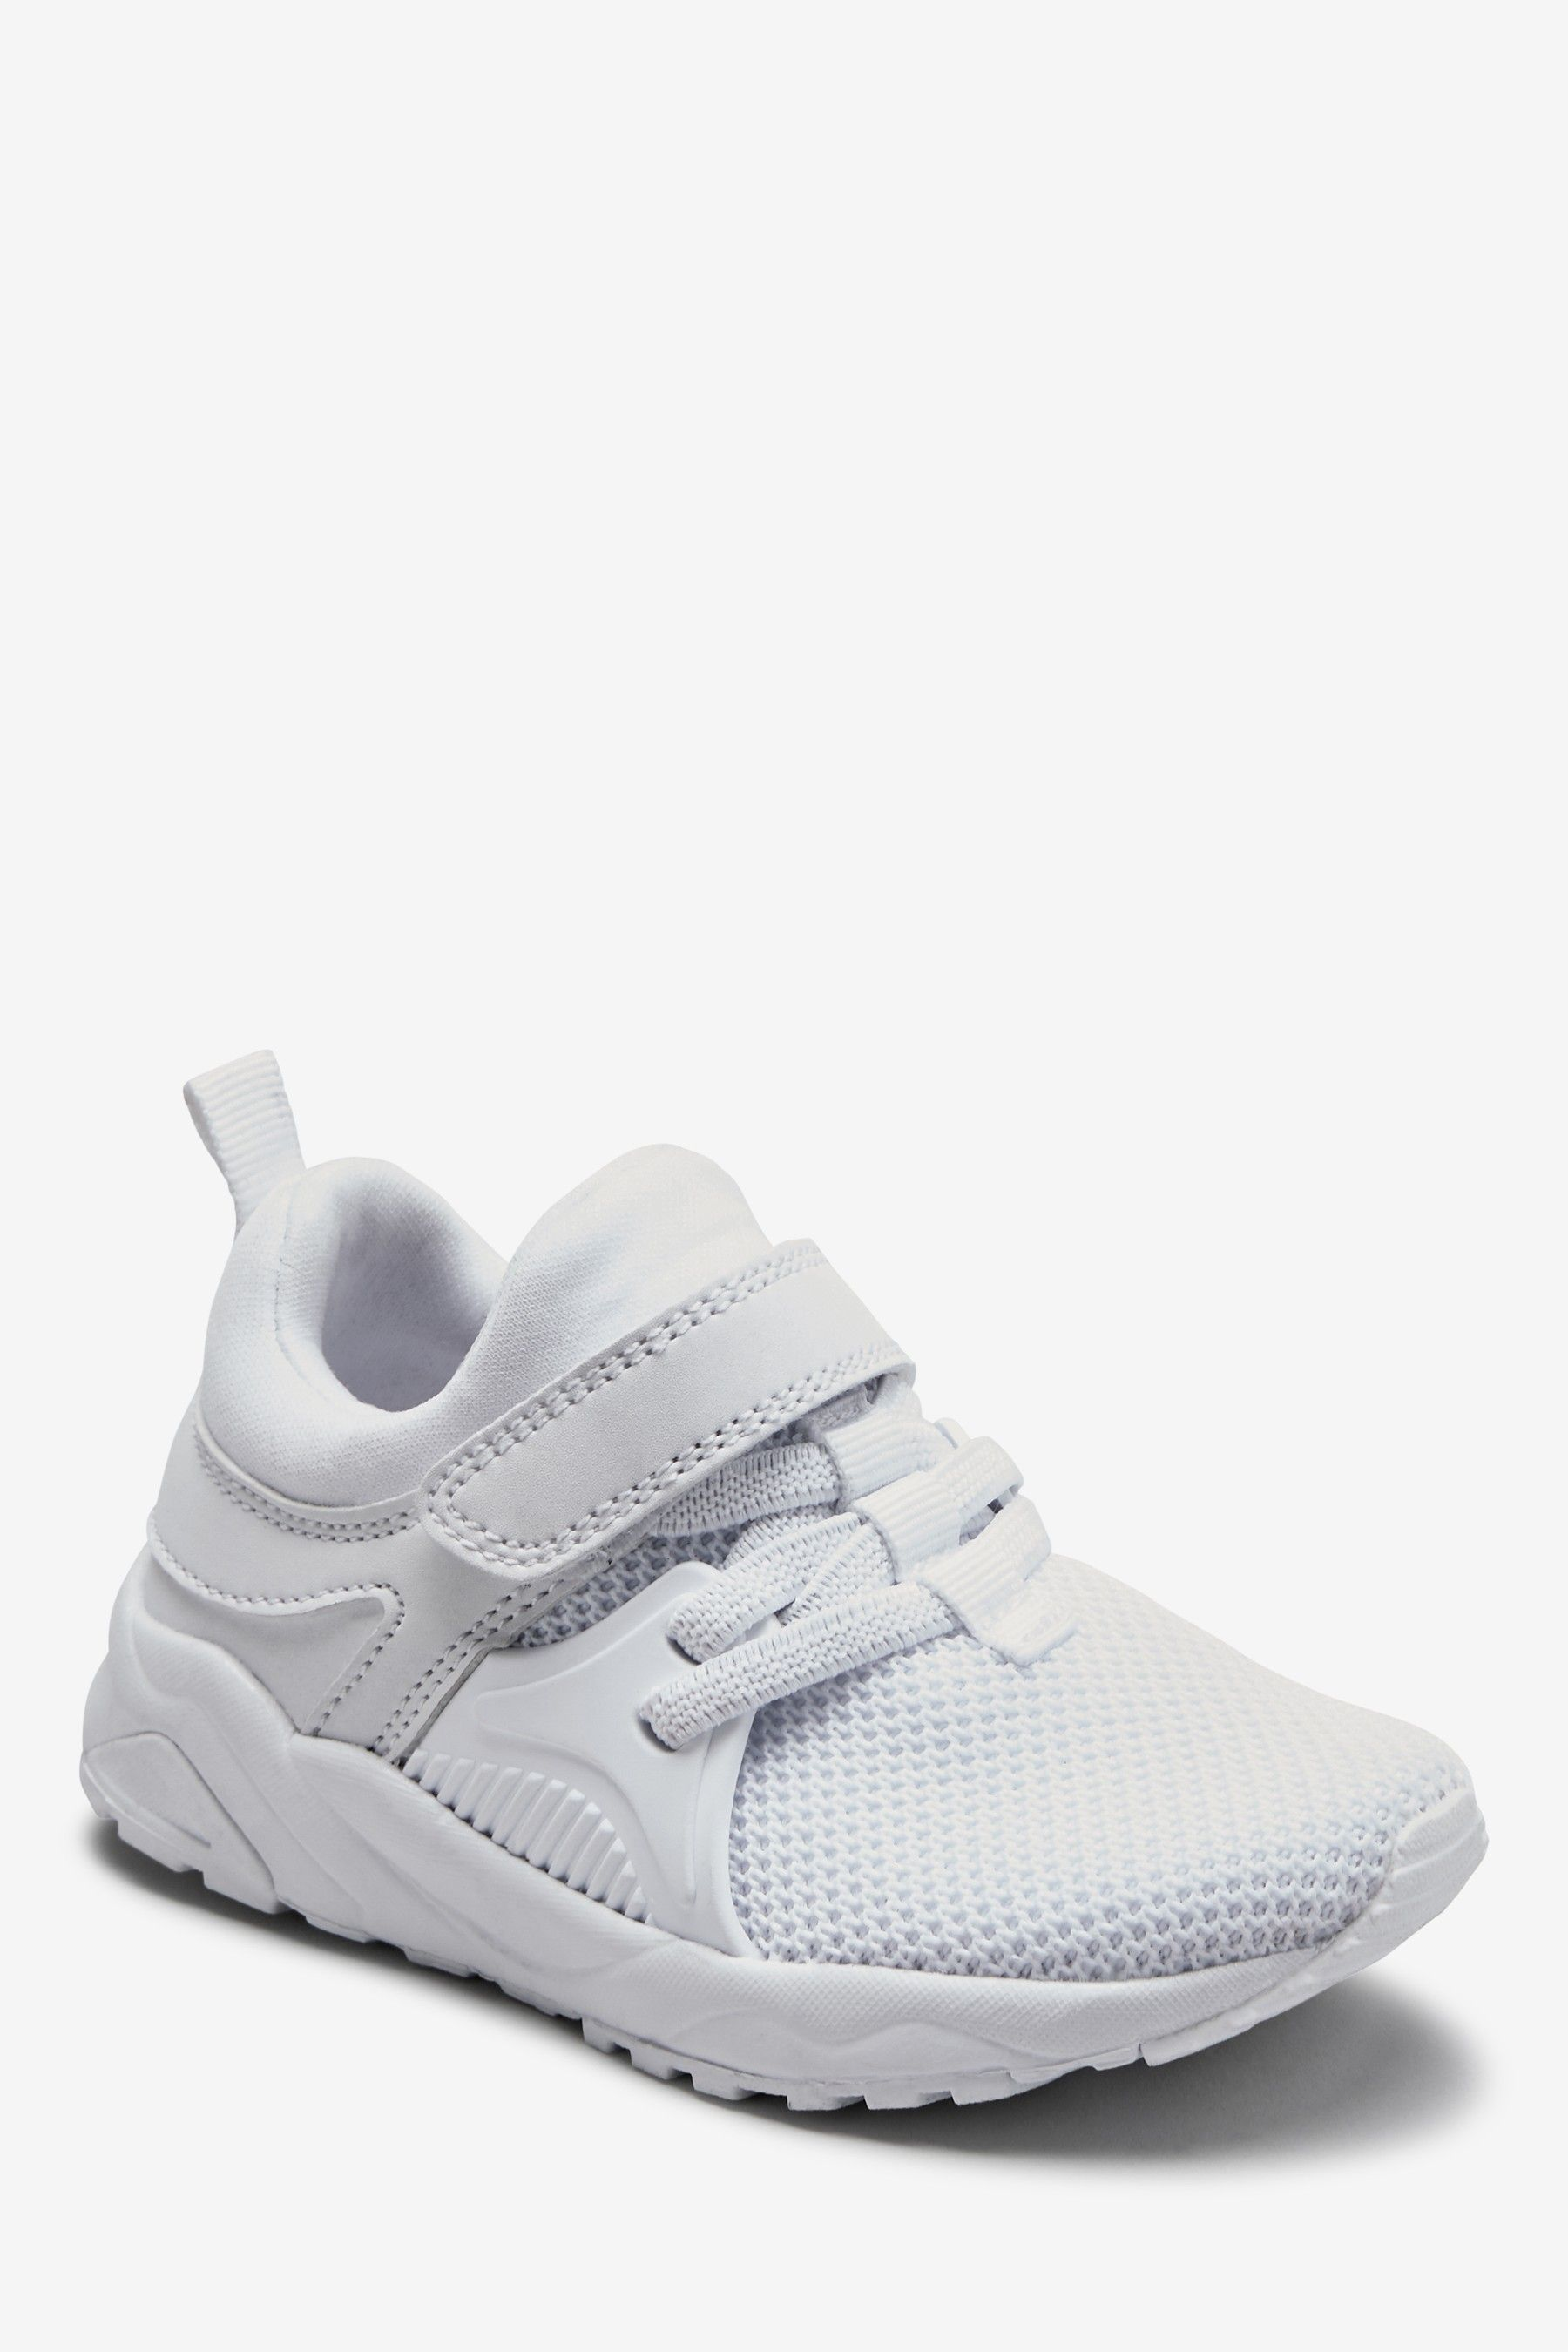 Boys Next White Elastic Lace Trainers